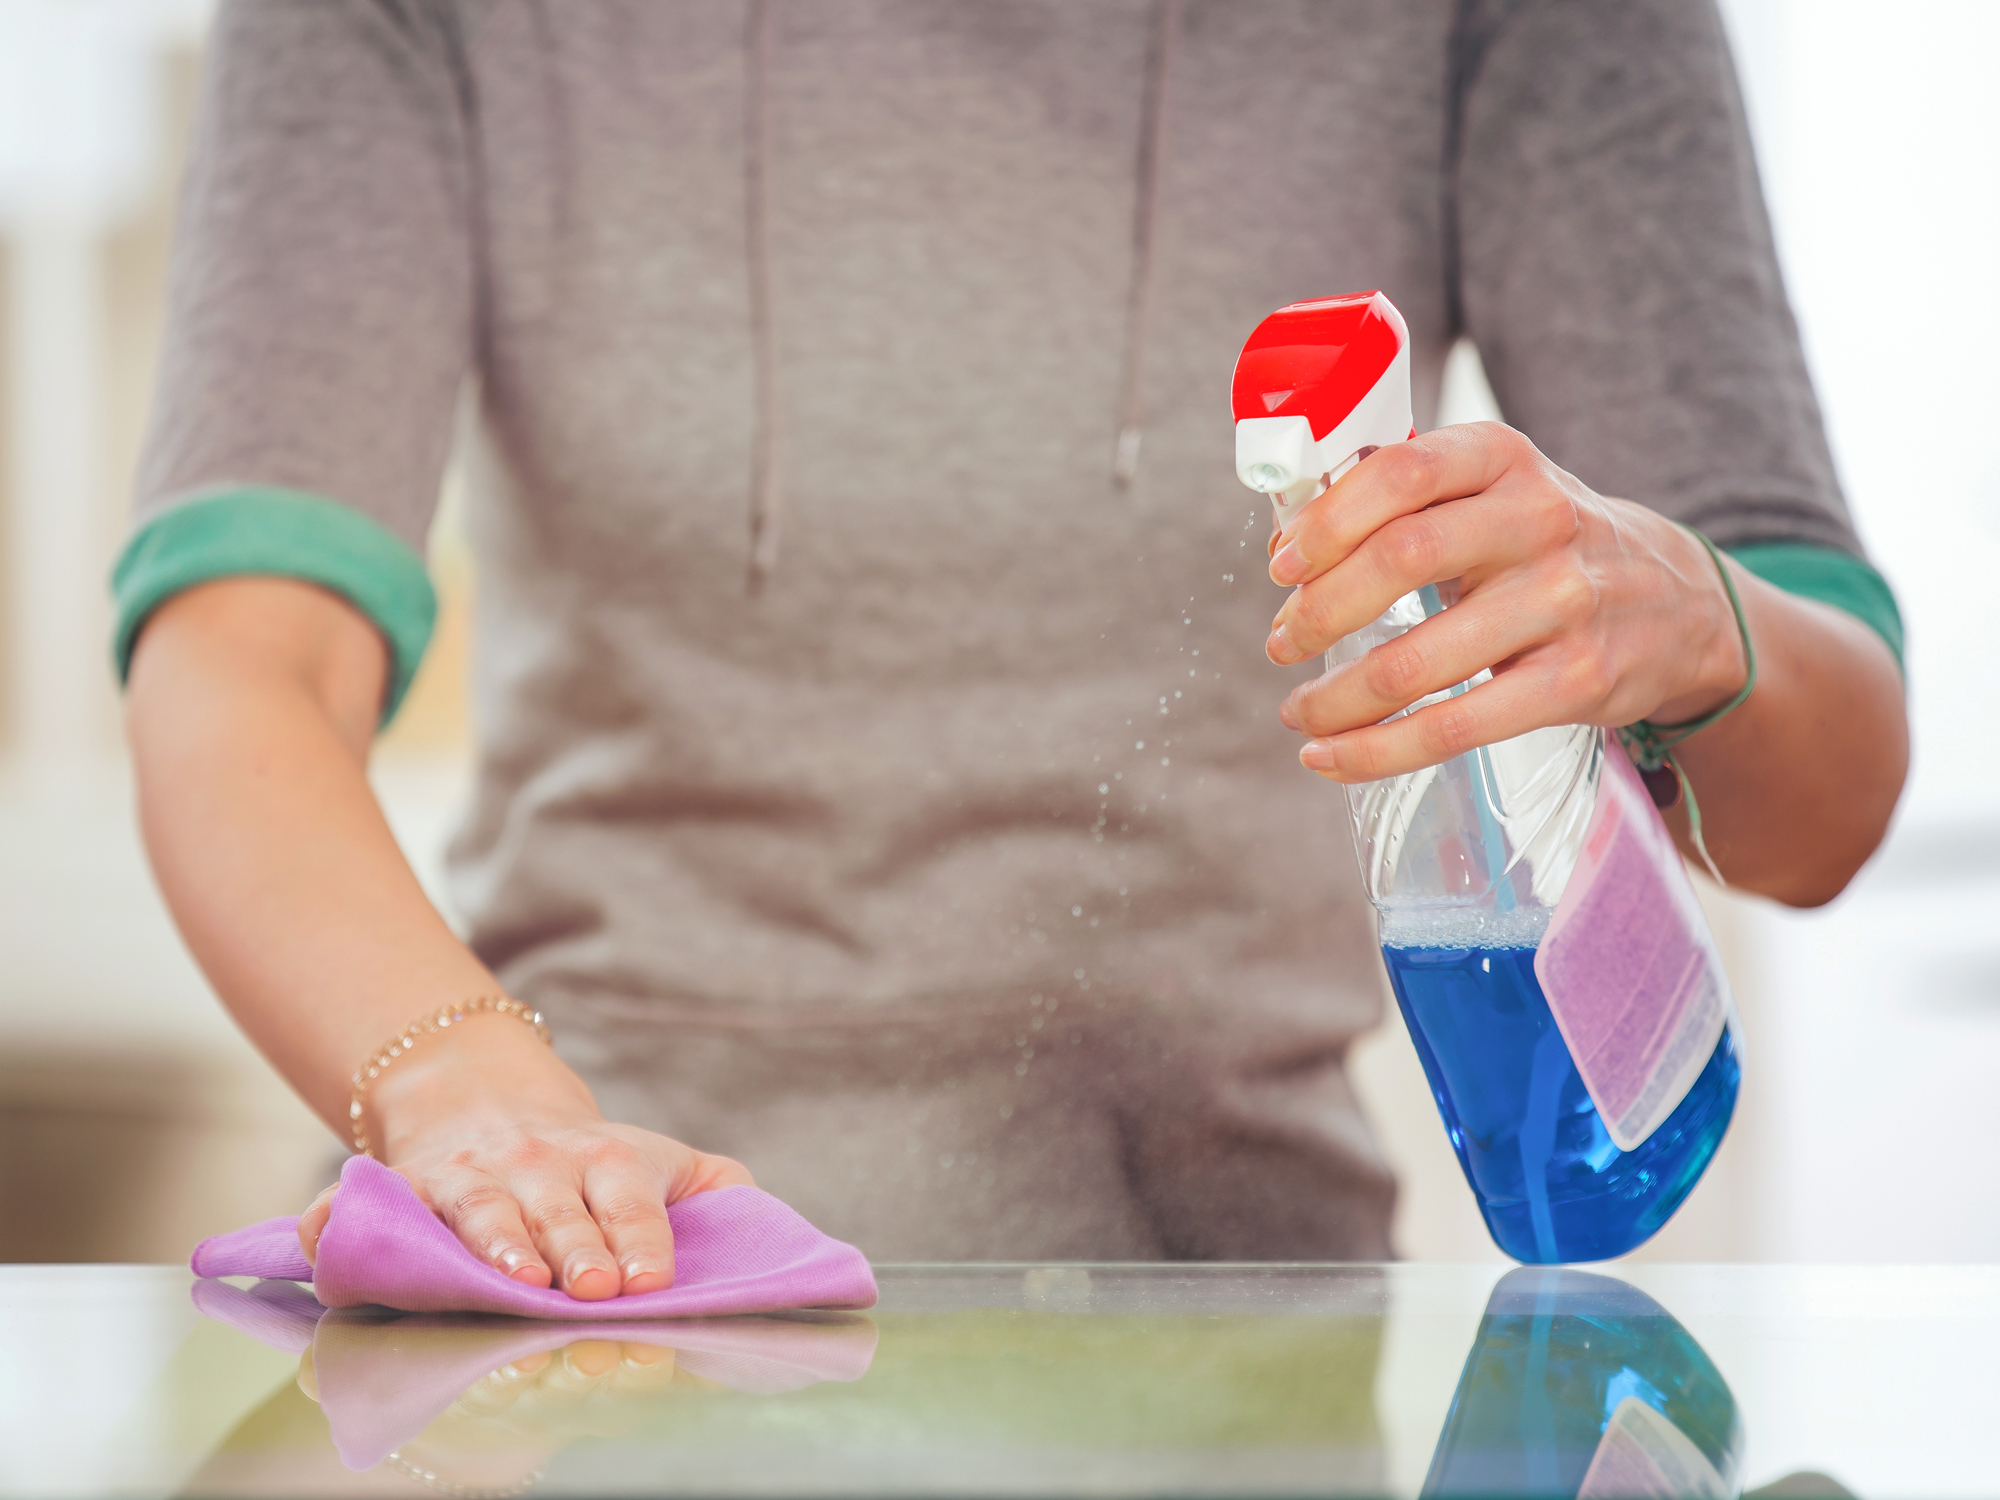 Is your clean home giving you COPD?